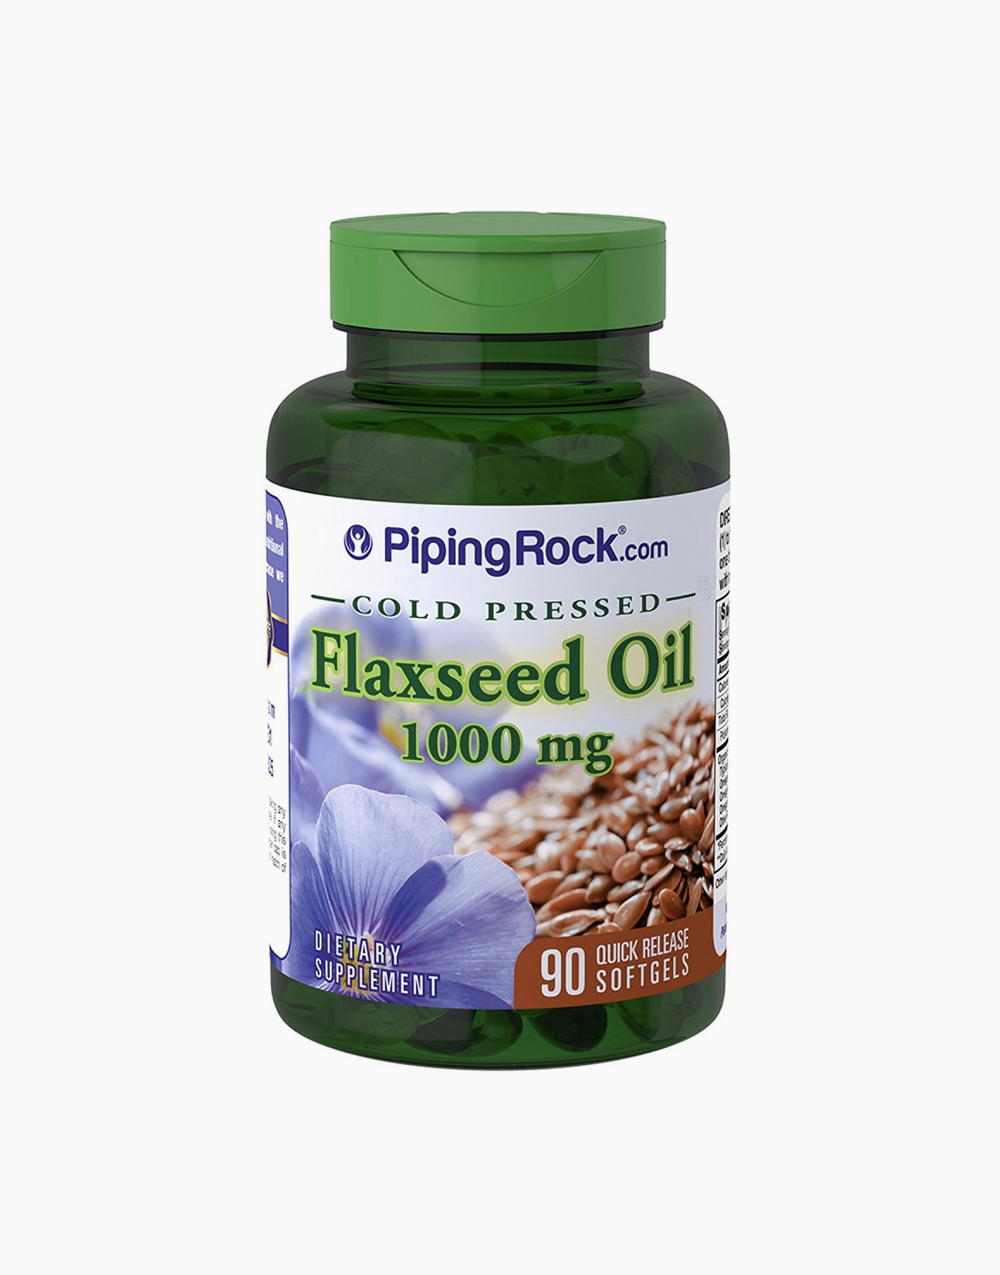 Flaxseed Oil 1000mg (90 Softgels) by Piping Rock